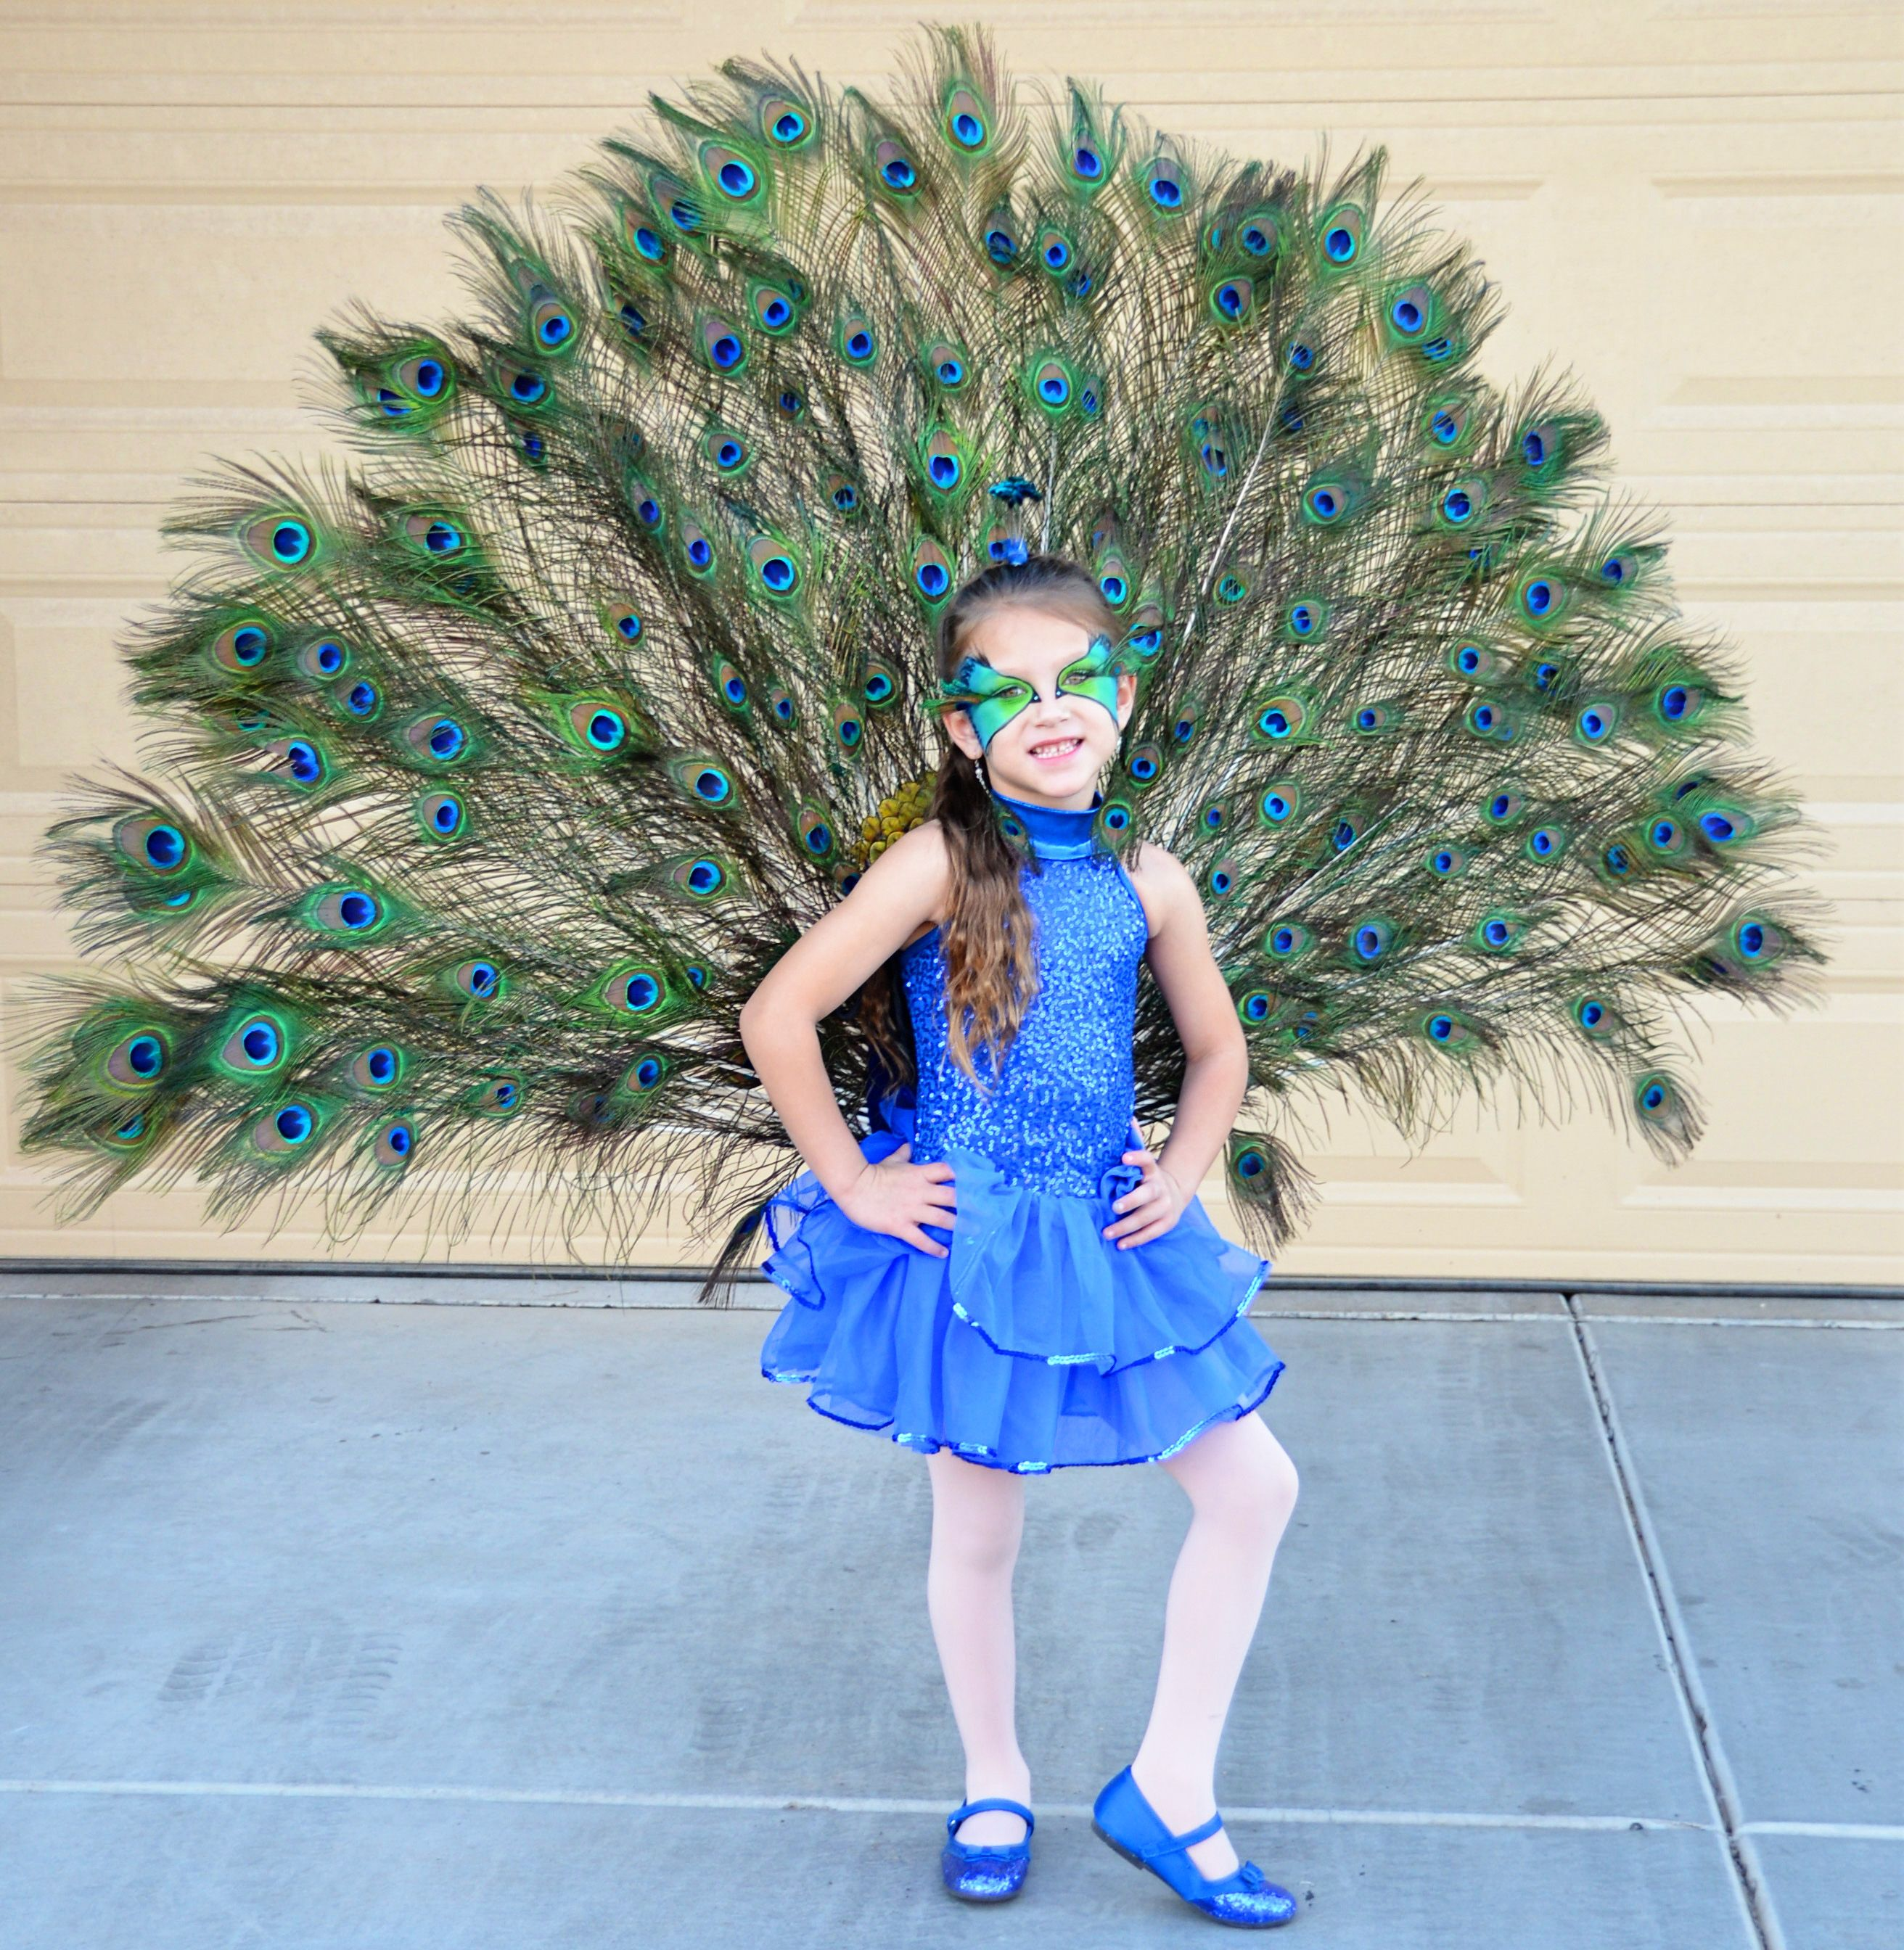 Instructions on creating beautiful childrens carnival costumes with your own hands